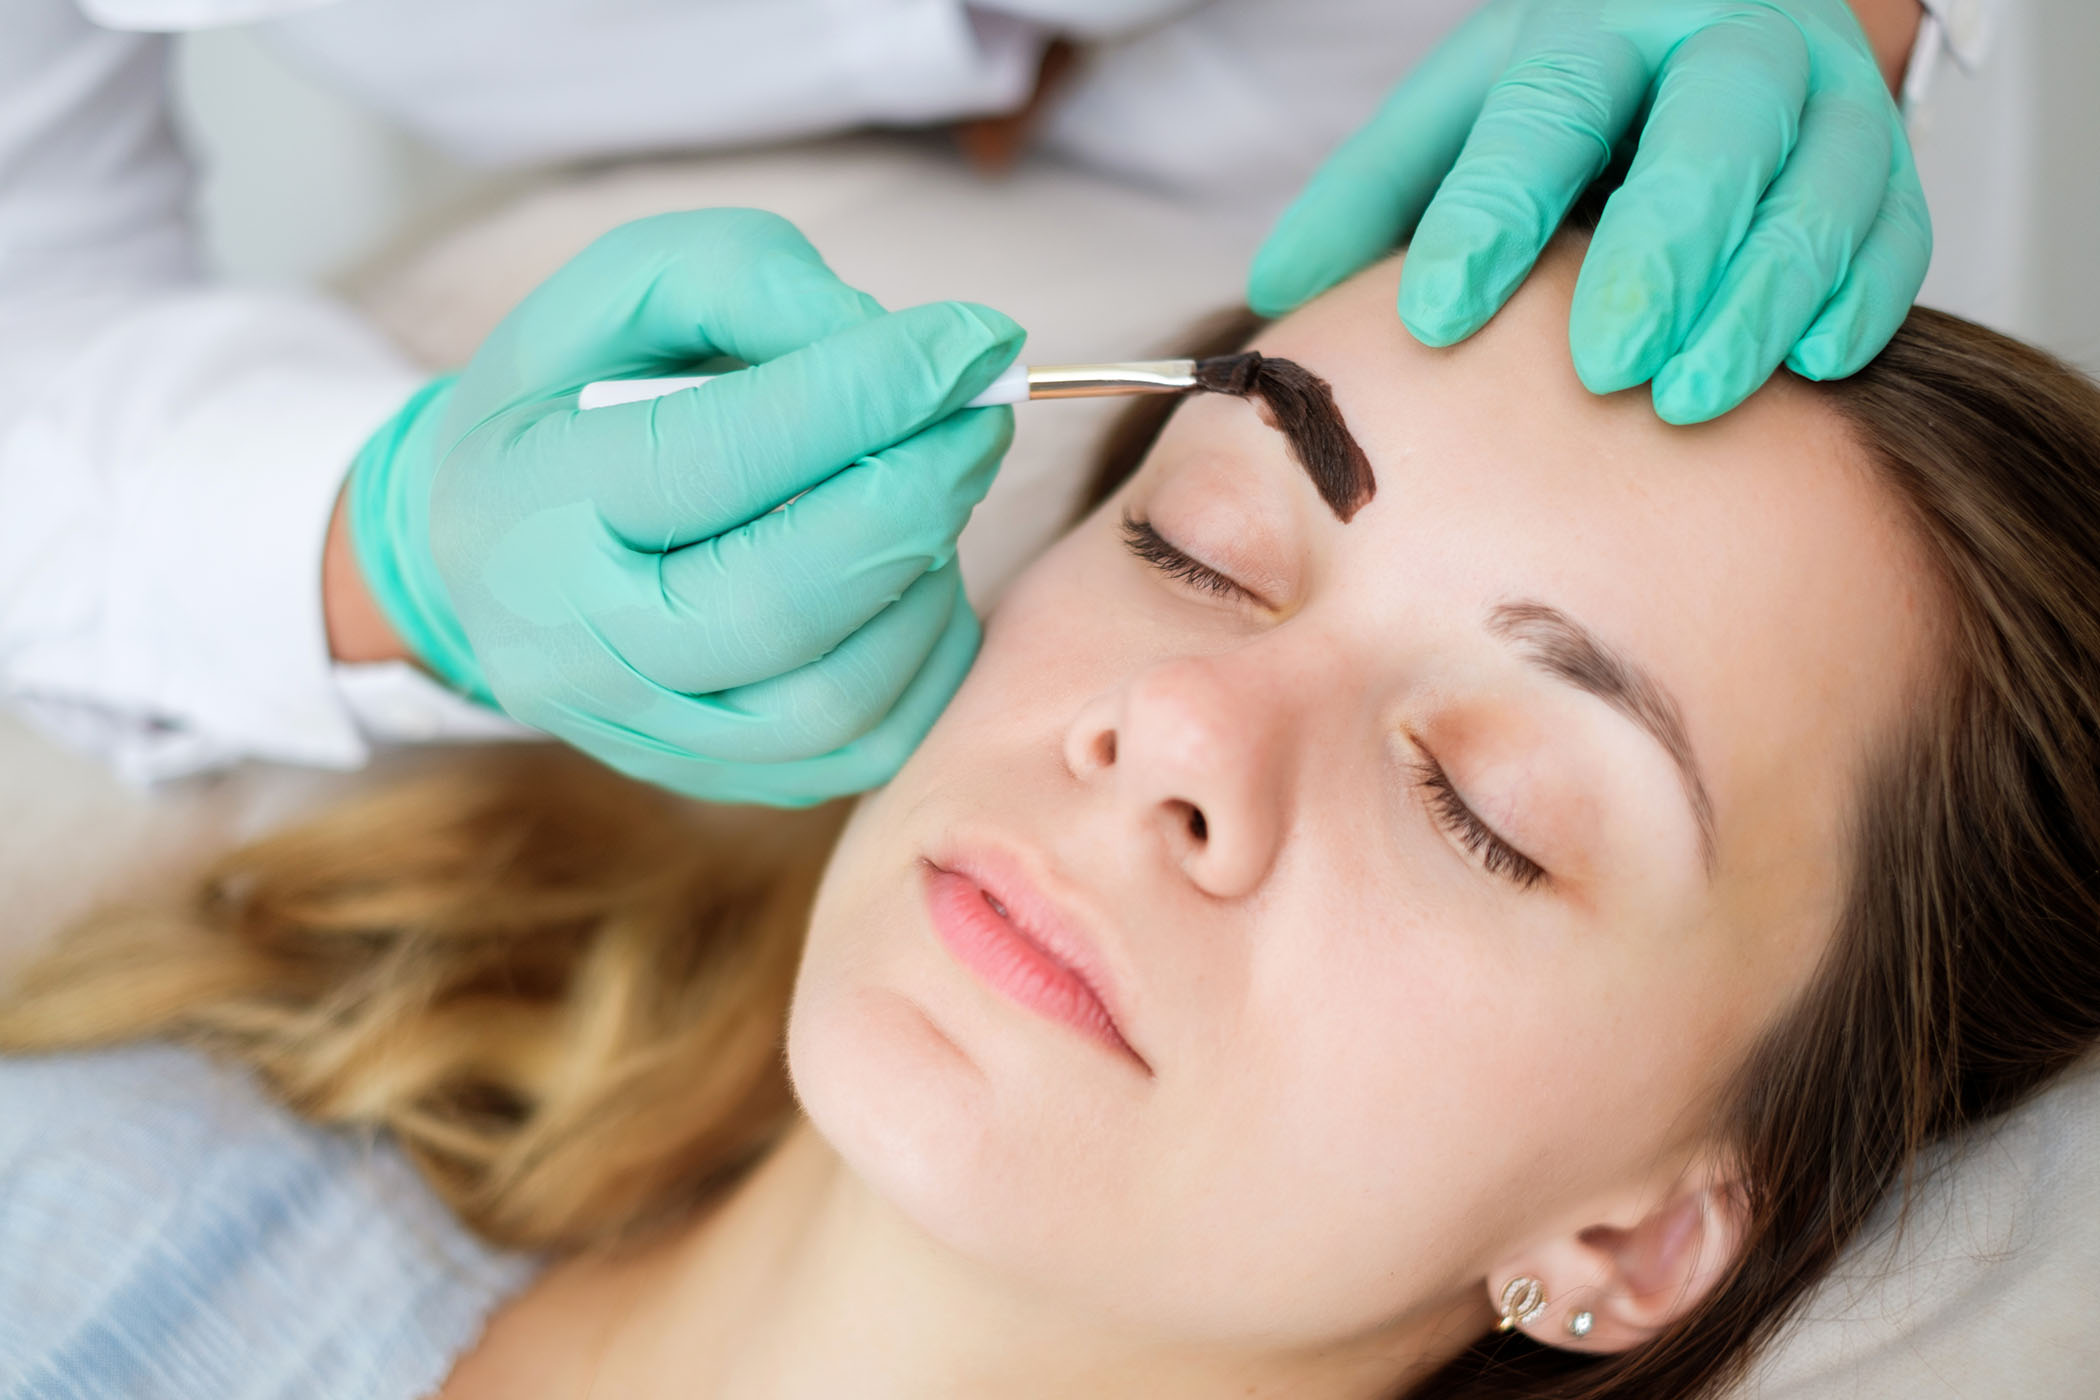 Woman having eyebrow tint in salon